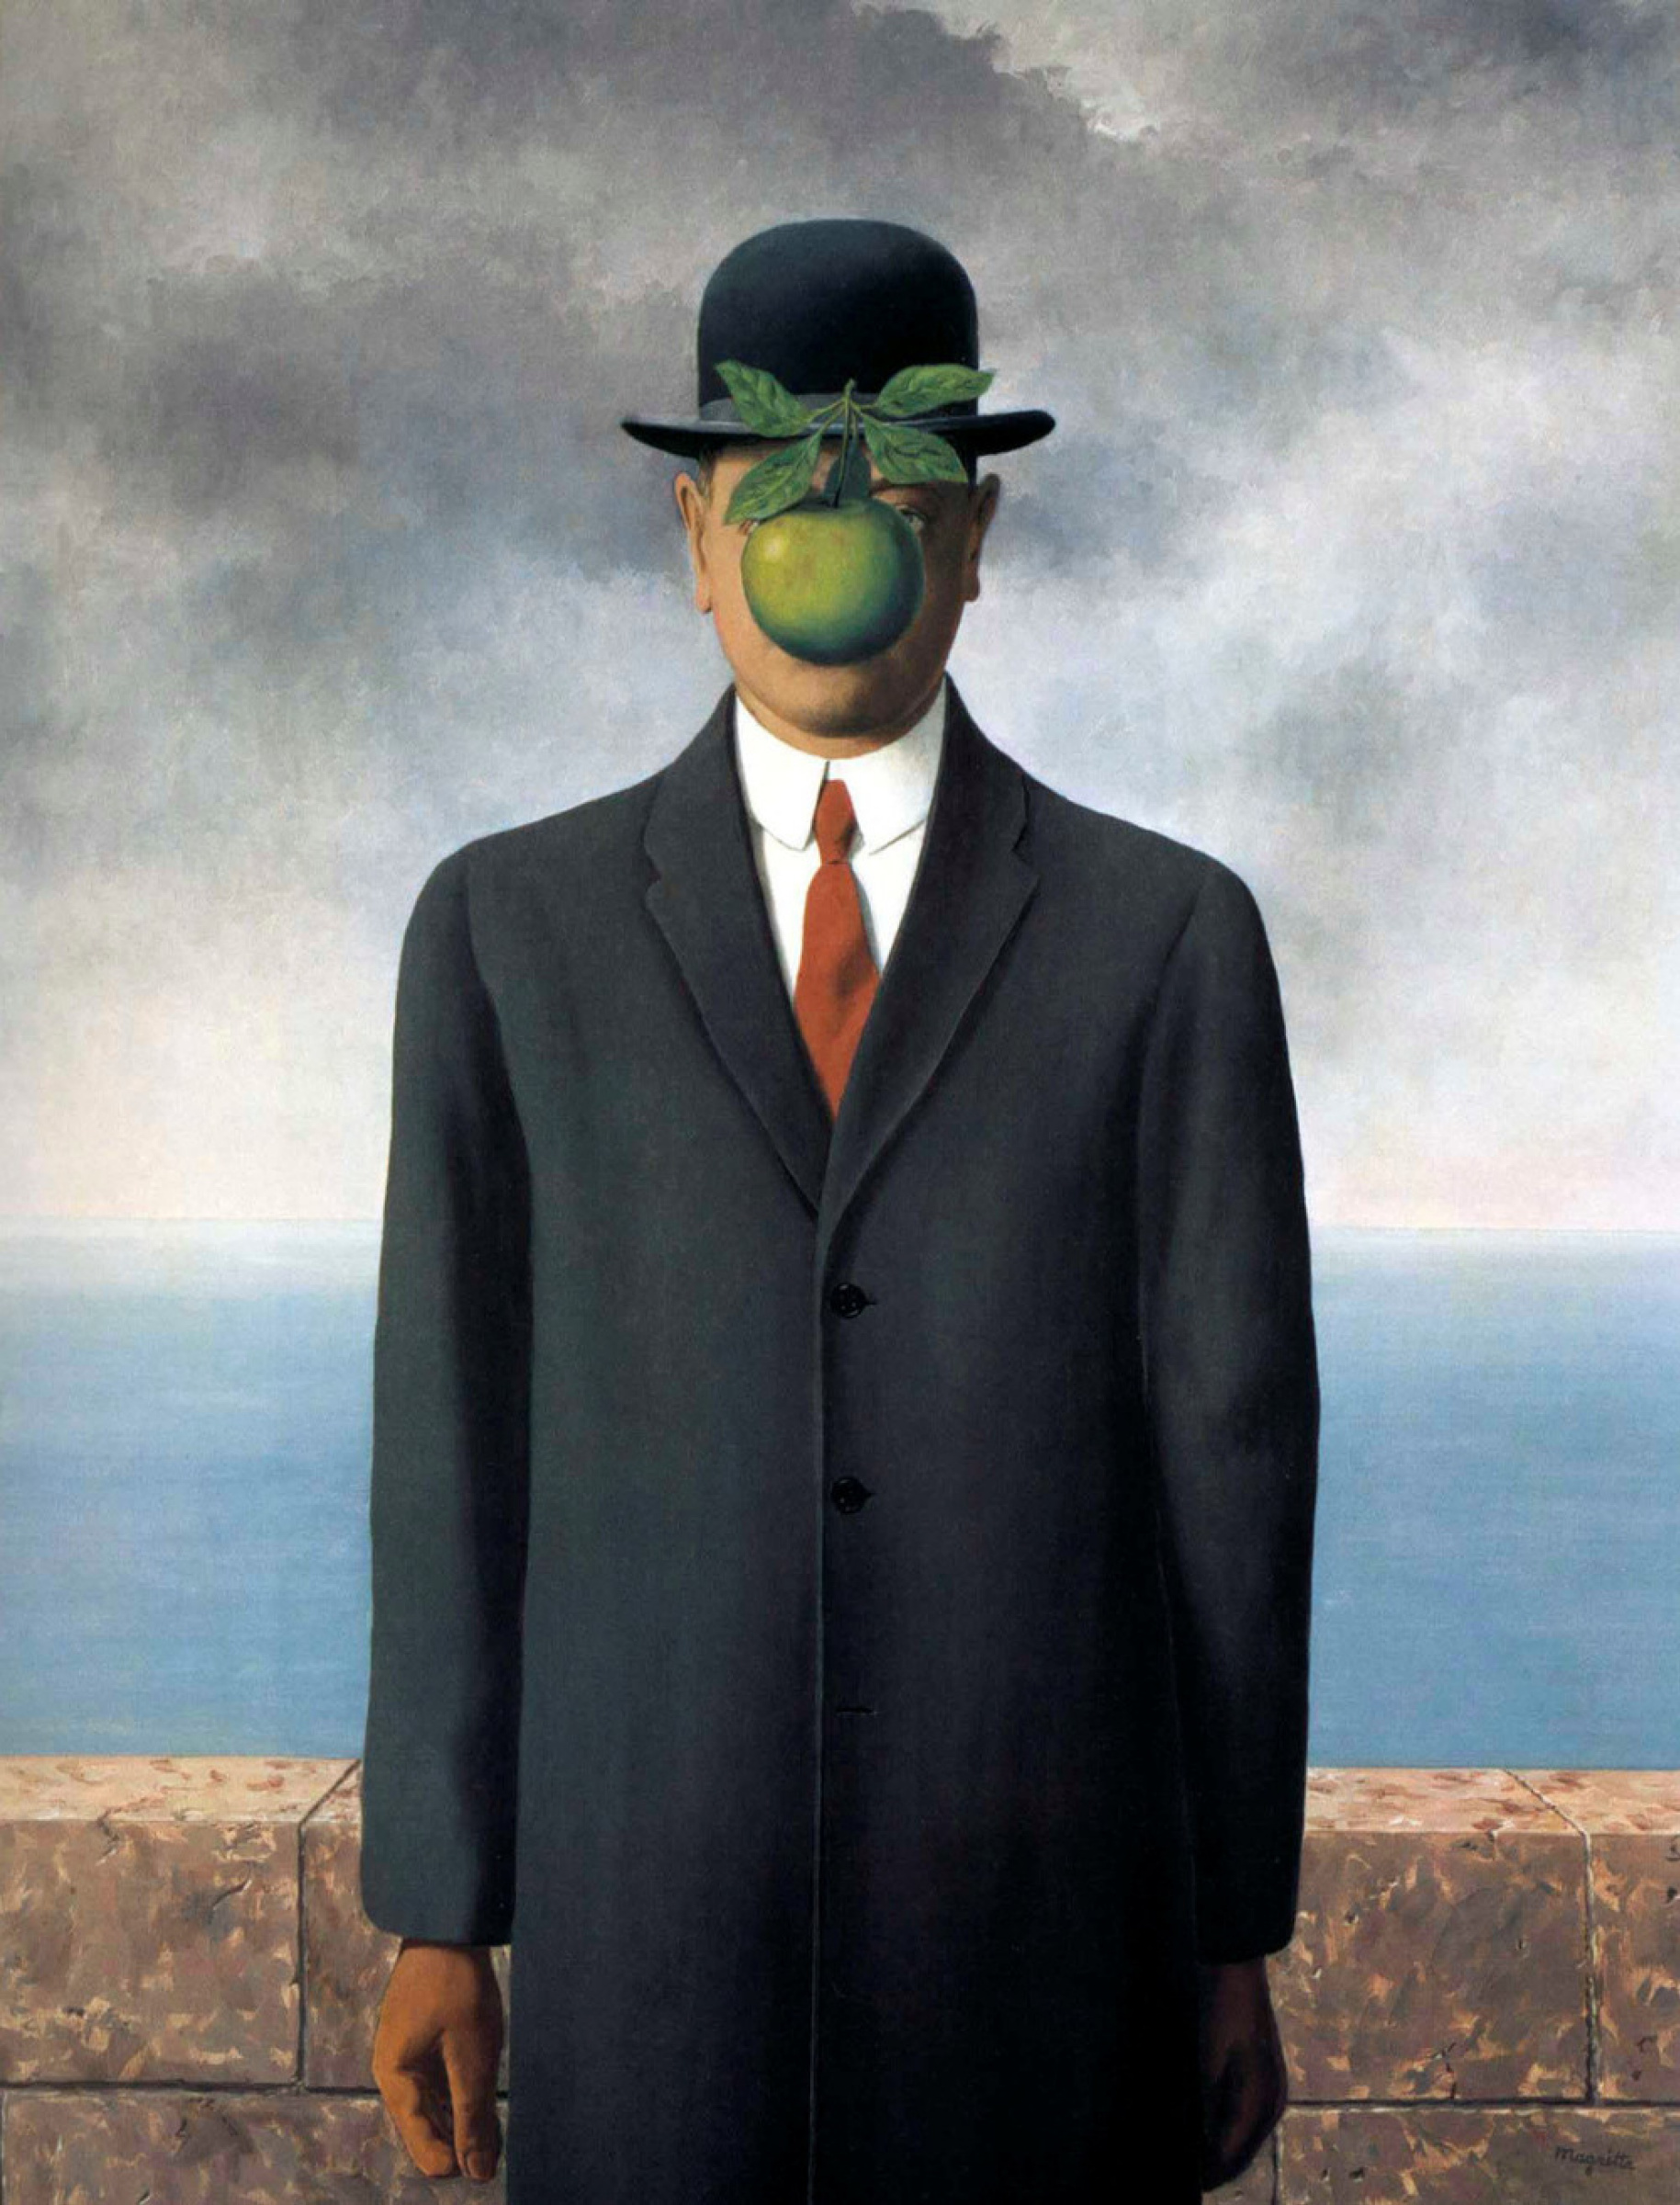 """René Magritte, """"The Son of Man"""" (1964)"""